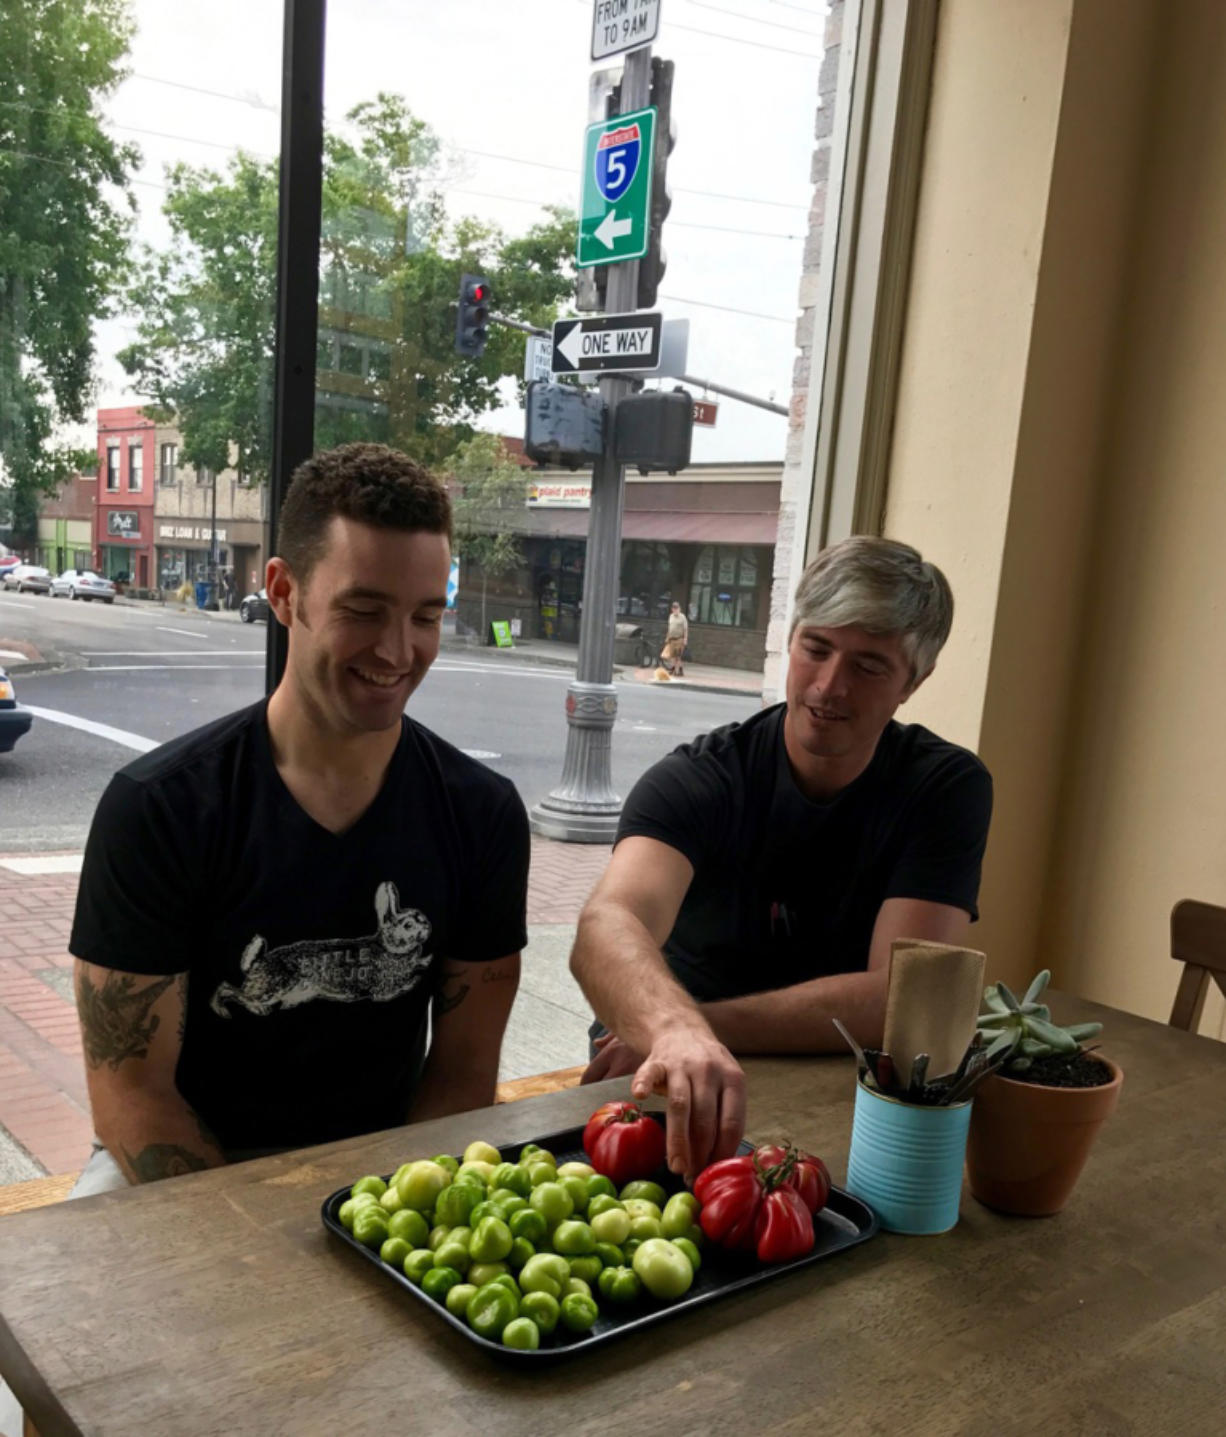 Little Conejo owners Mychal Dynes and Mark Wooten talk about the produce from Mark's farm, Phantom Rabbit Farm, that they use in their downtown Vancouver restaurant.